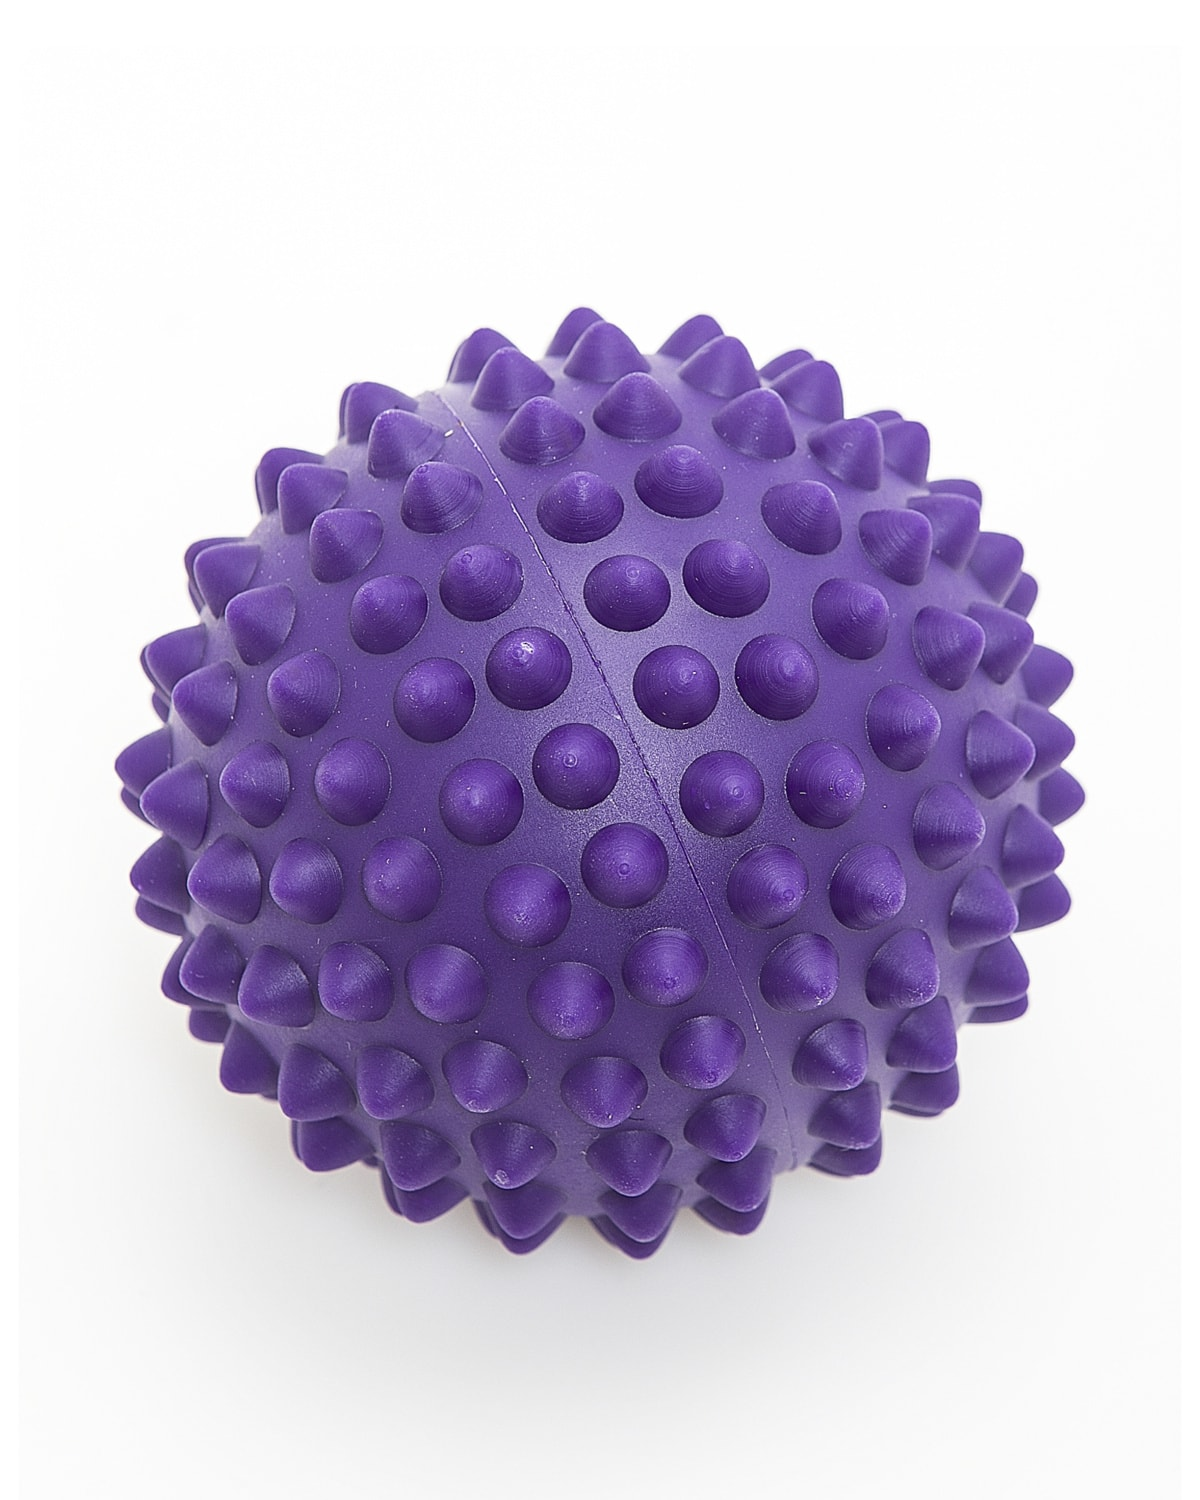 LEVITY Premium Fitness Spiky Trigger Ball 4